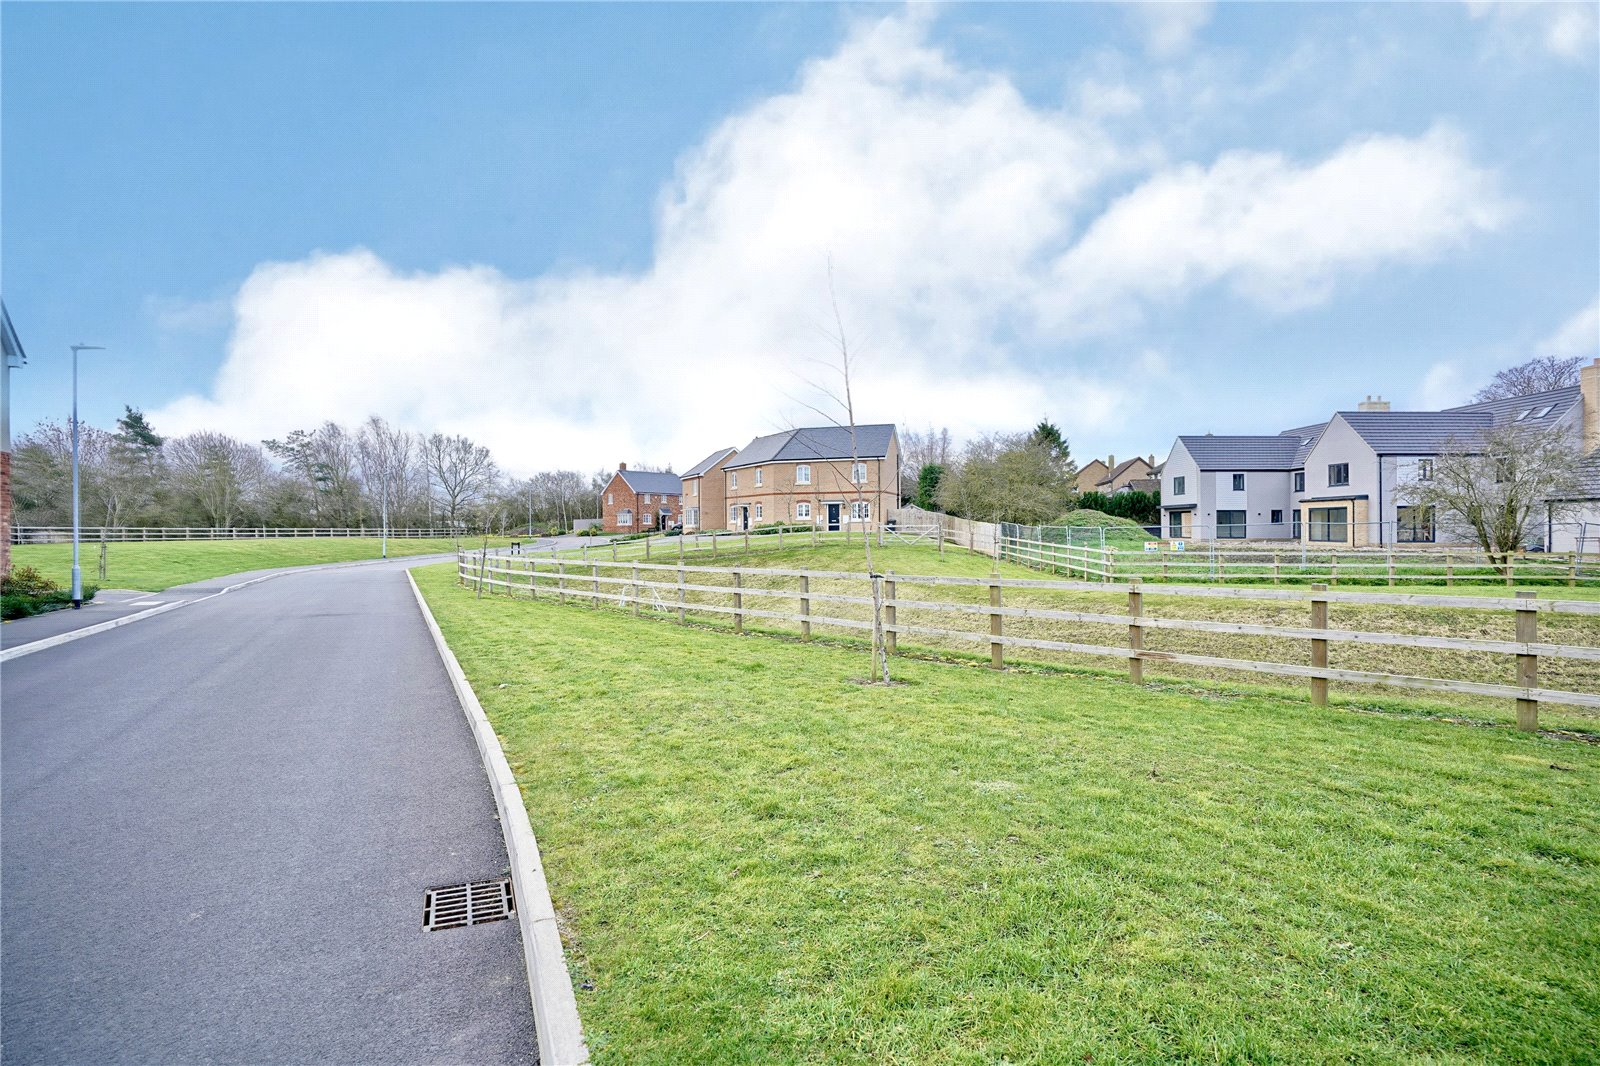 3 bed house for sale in Sawtry, PE28 5ZJ 11